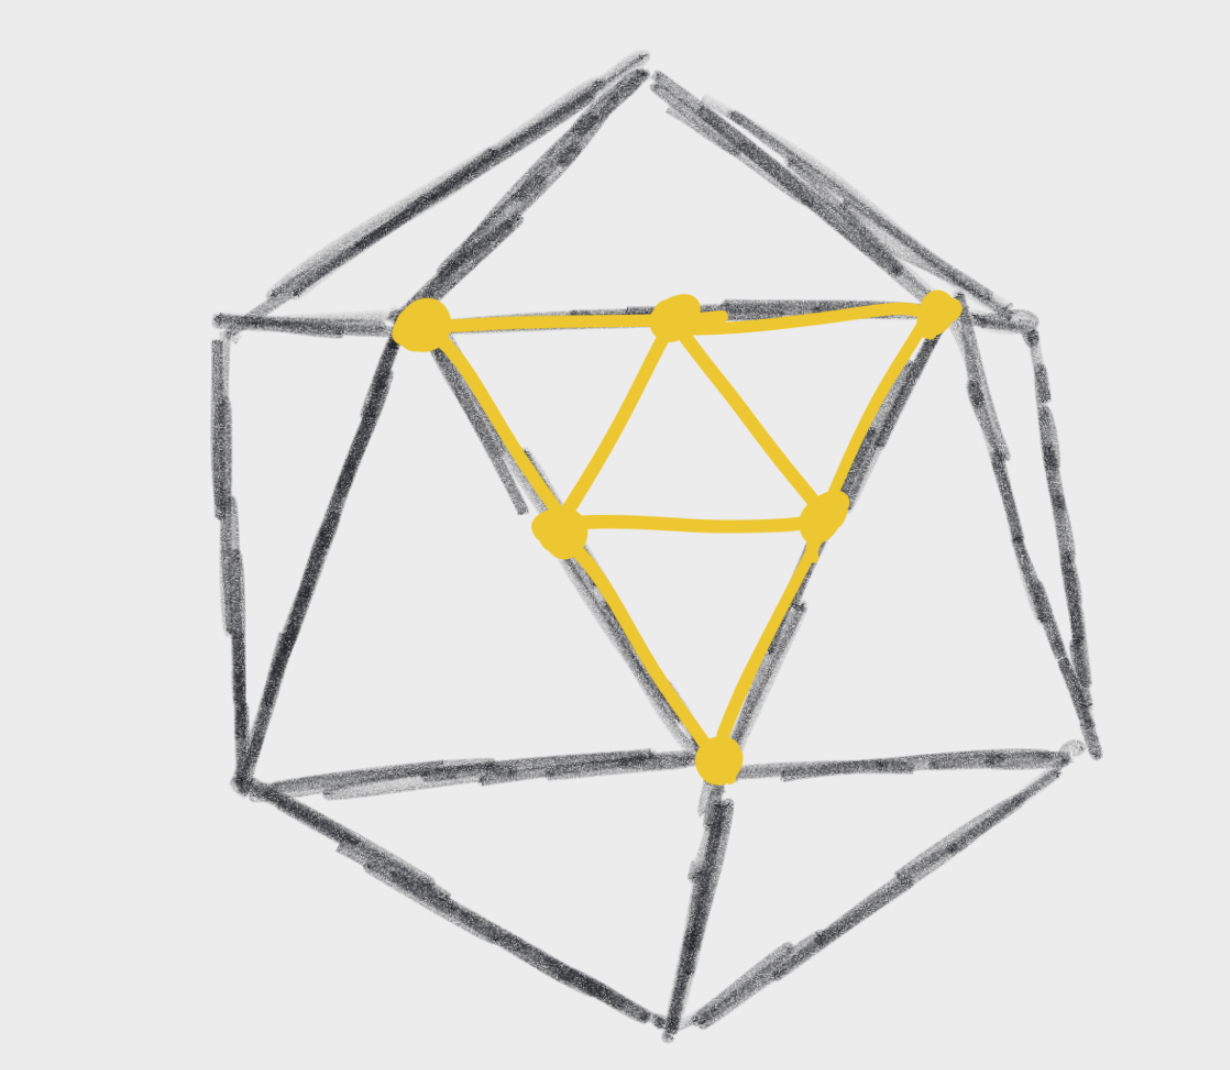 Triangles on an icosahedron